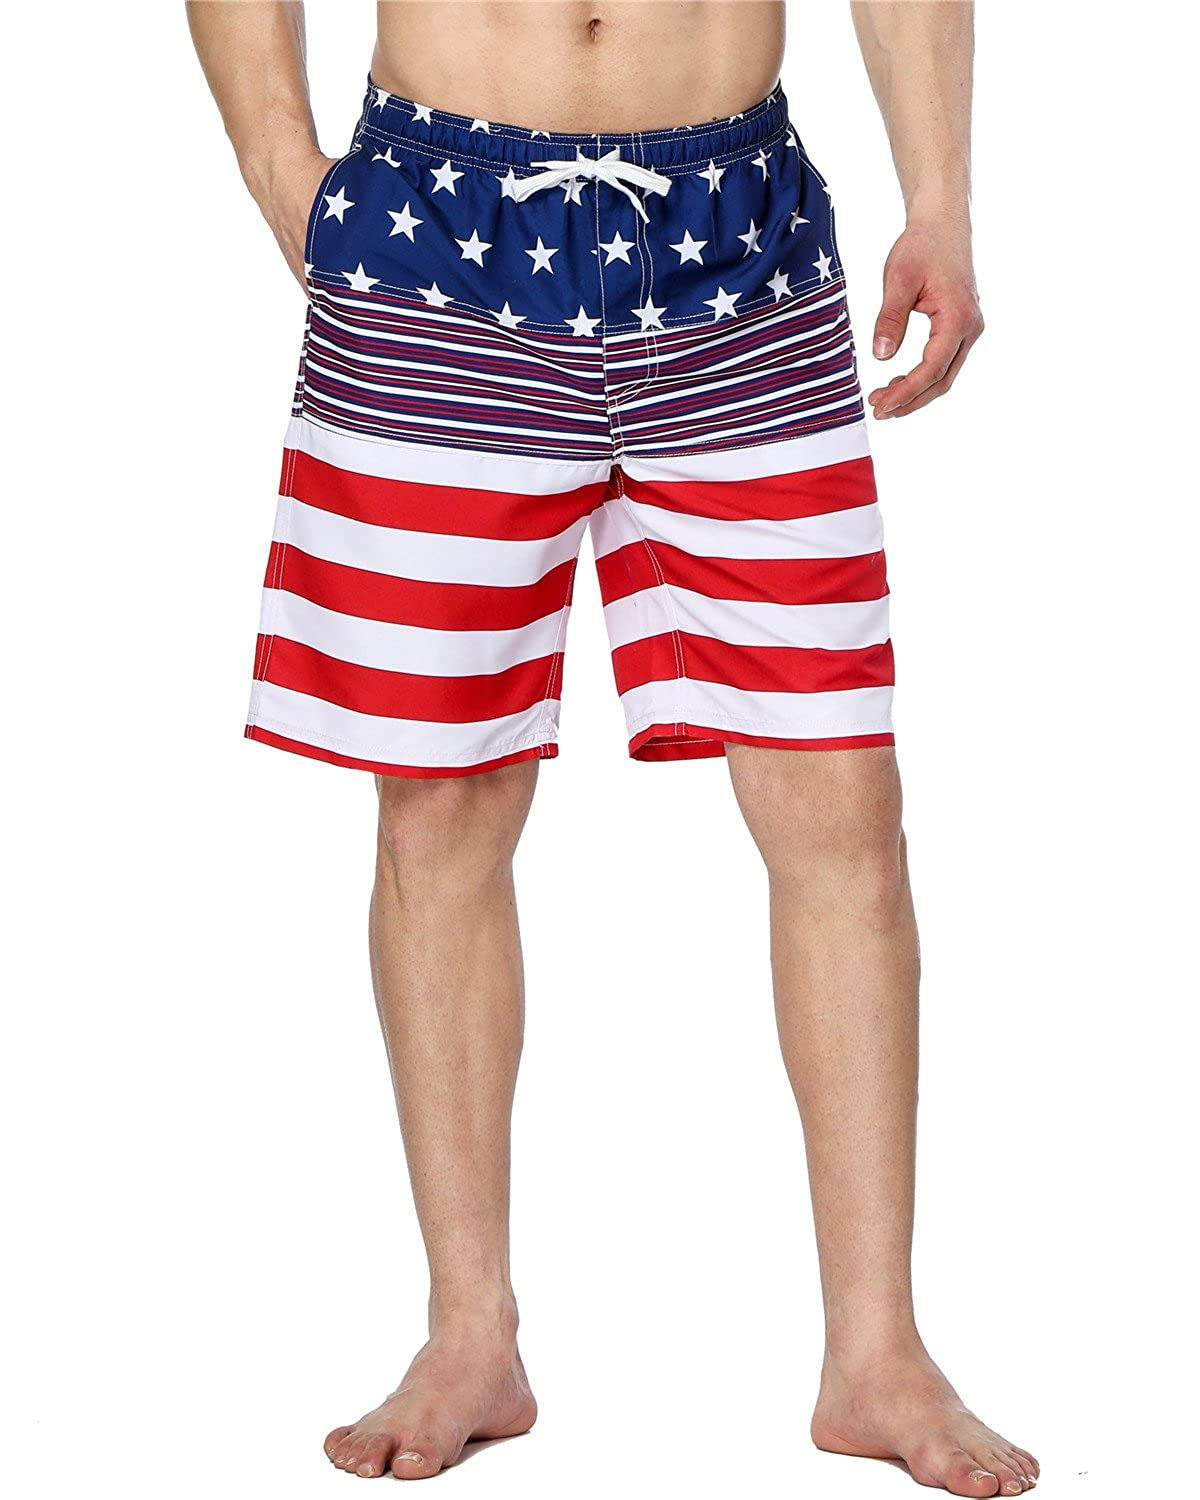 0238e97675 Mens lightweight board short featuring American USA flag print. Elastic  waistband with drawstring in front to tighten or loosen